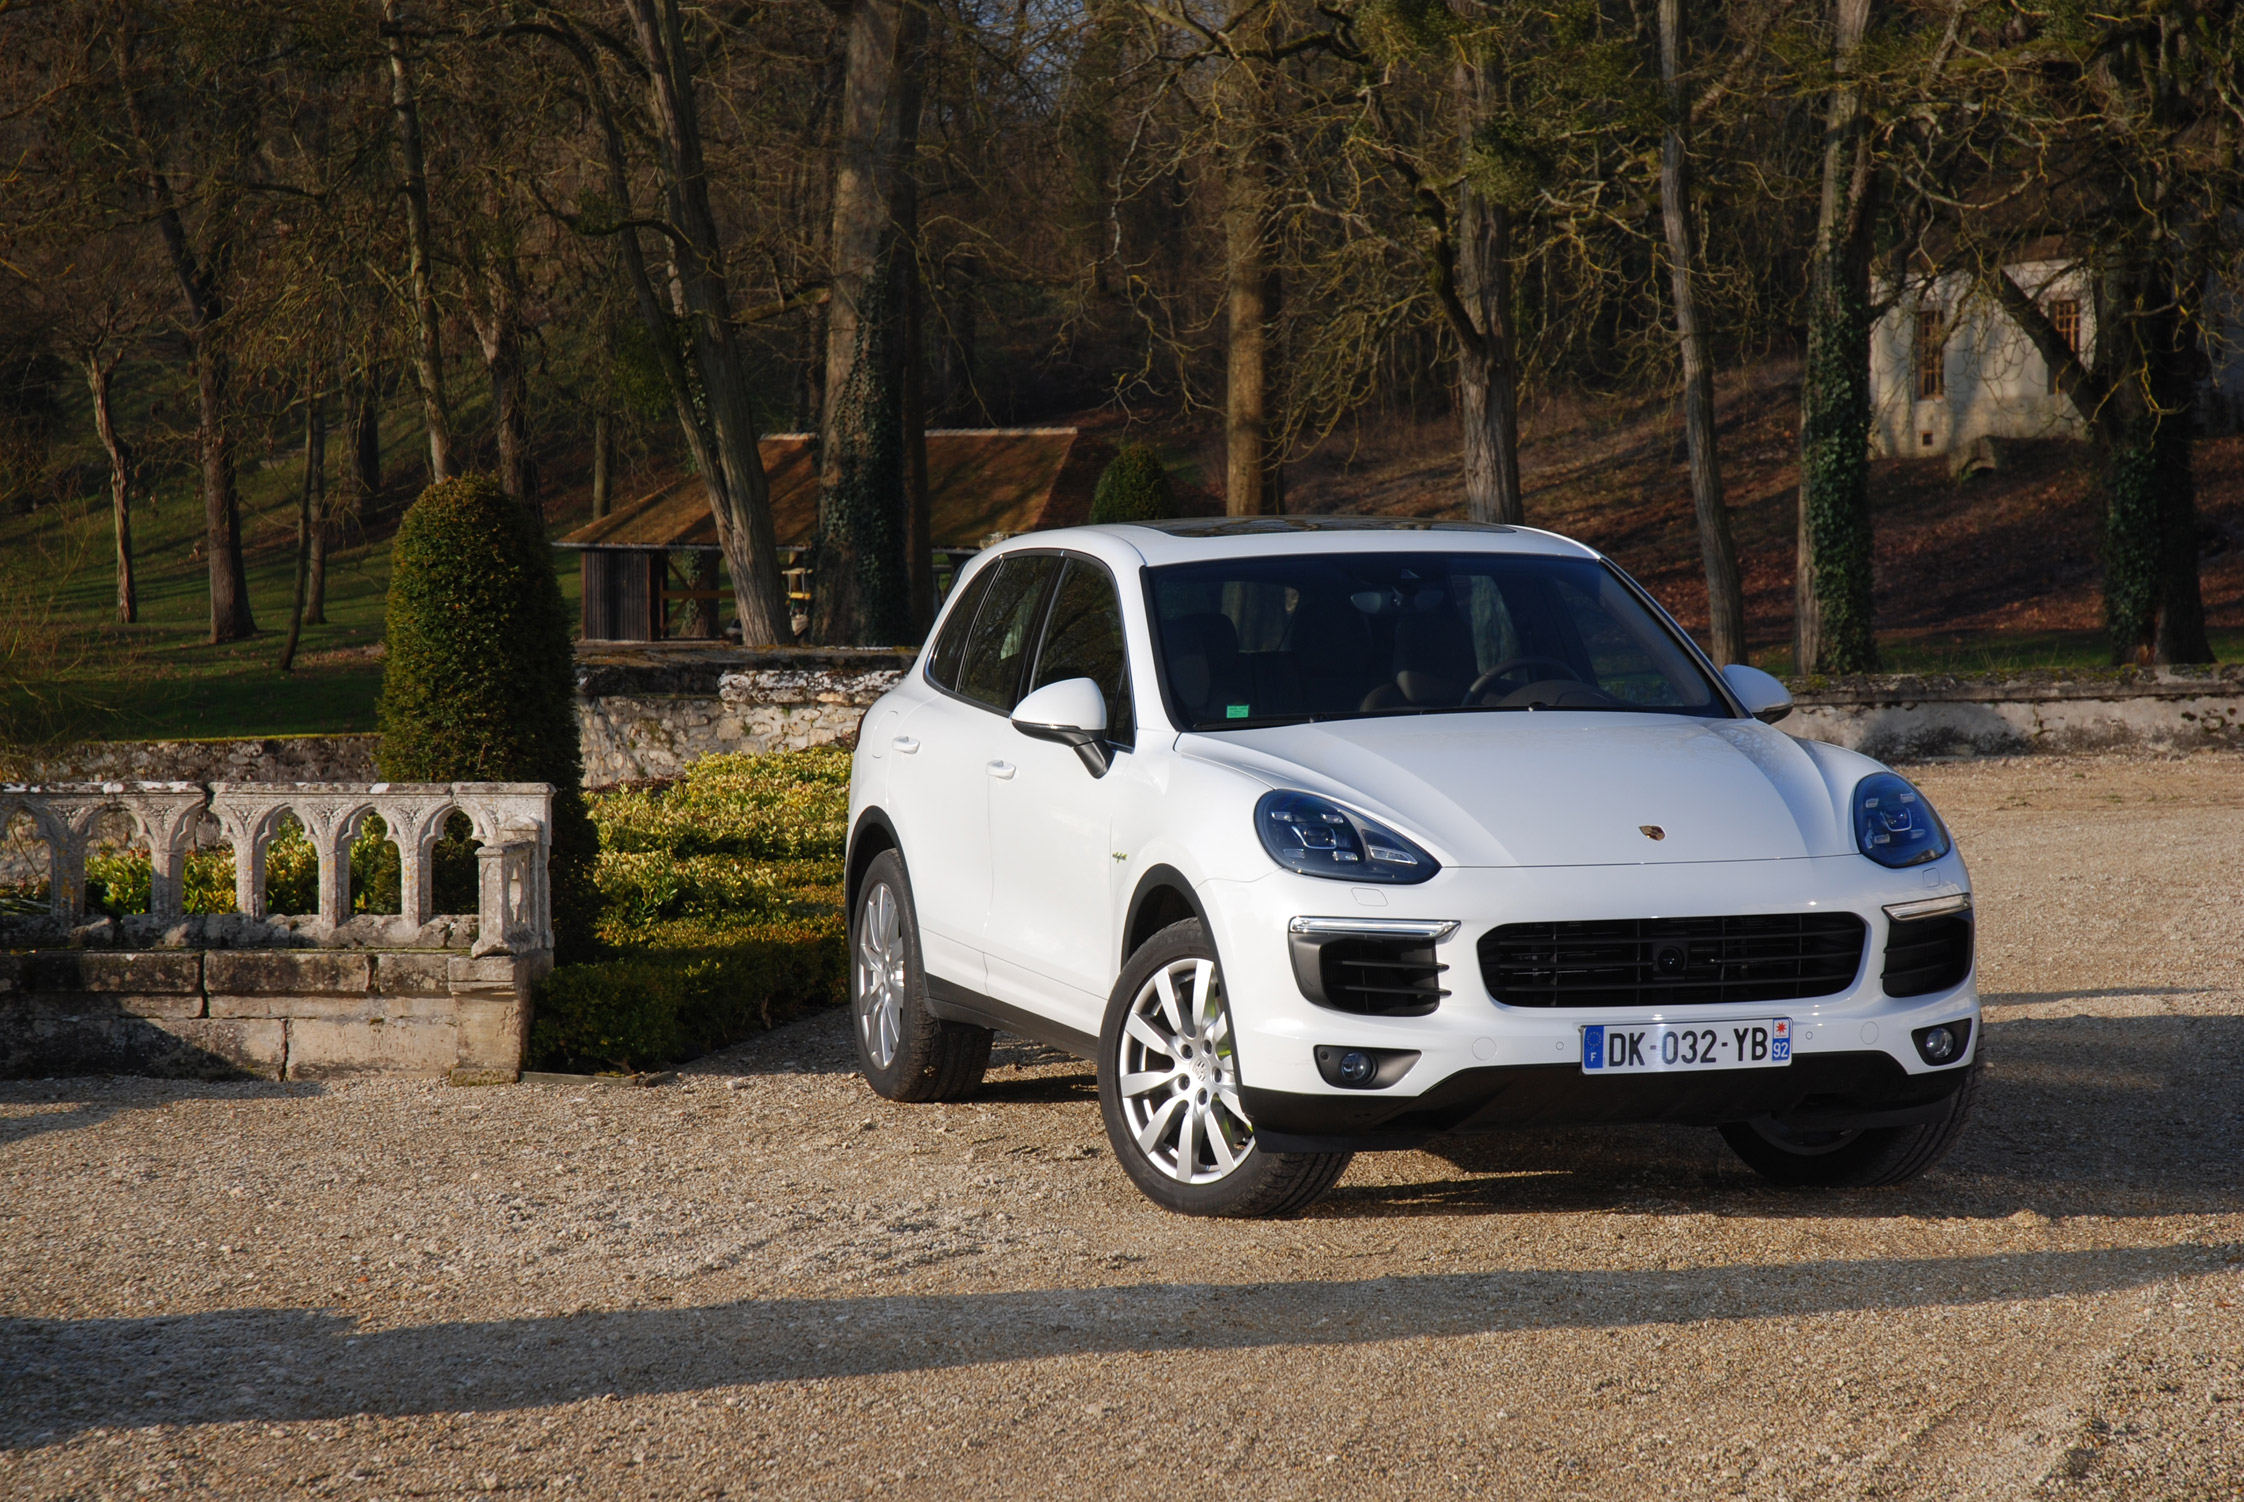 essai porsche cayenne s e hybrid motorlegend. Black Bedroom Furniture Sets. Home Design Ideas